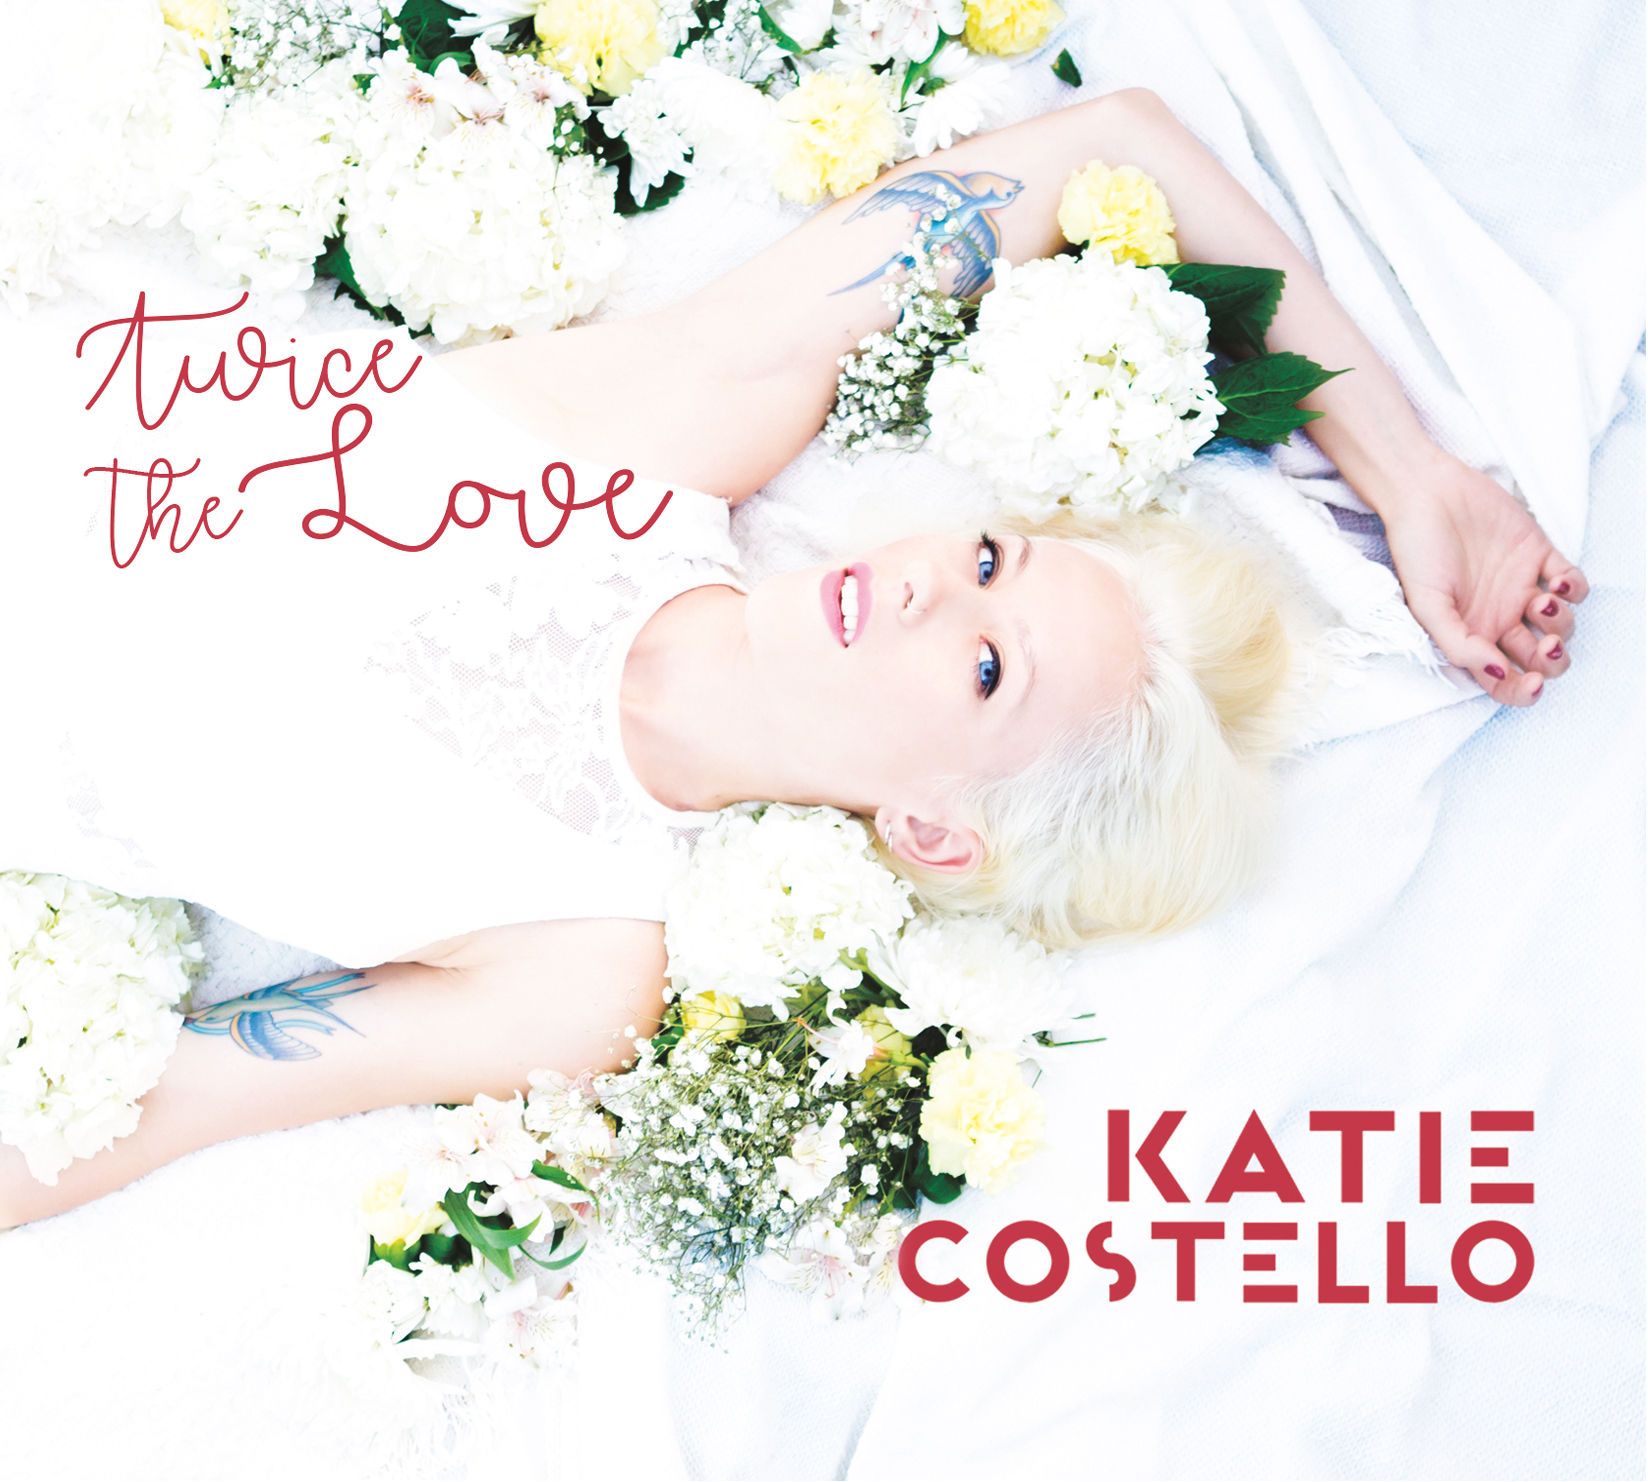 Thinking Lyrically Reviews 'Twice the Love' -